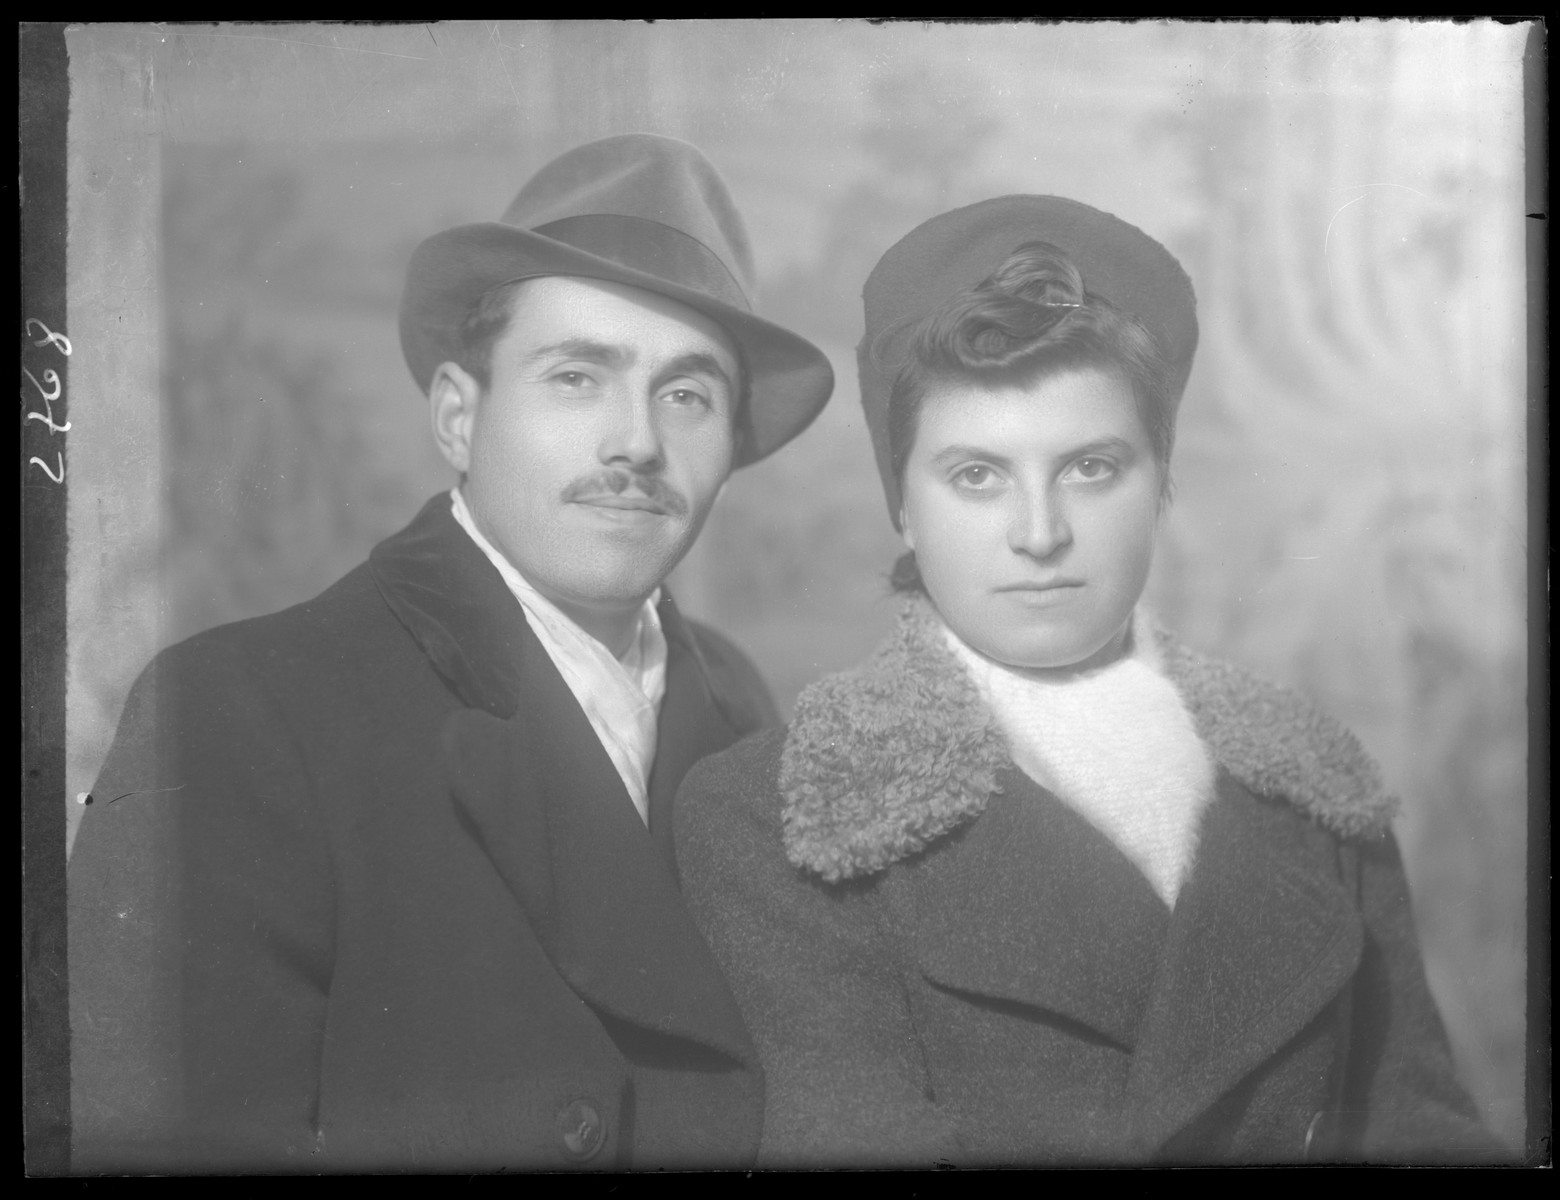 Studio portrait of Mihaly Friedman and his wife.